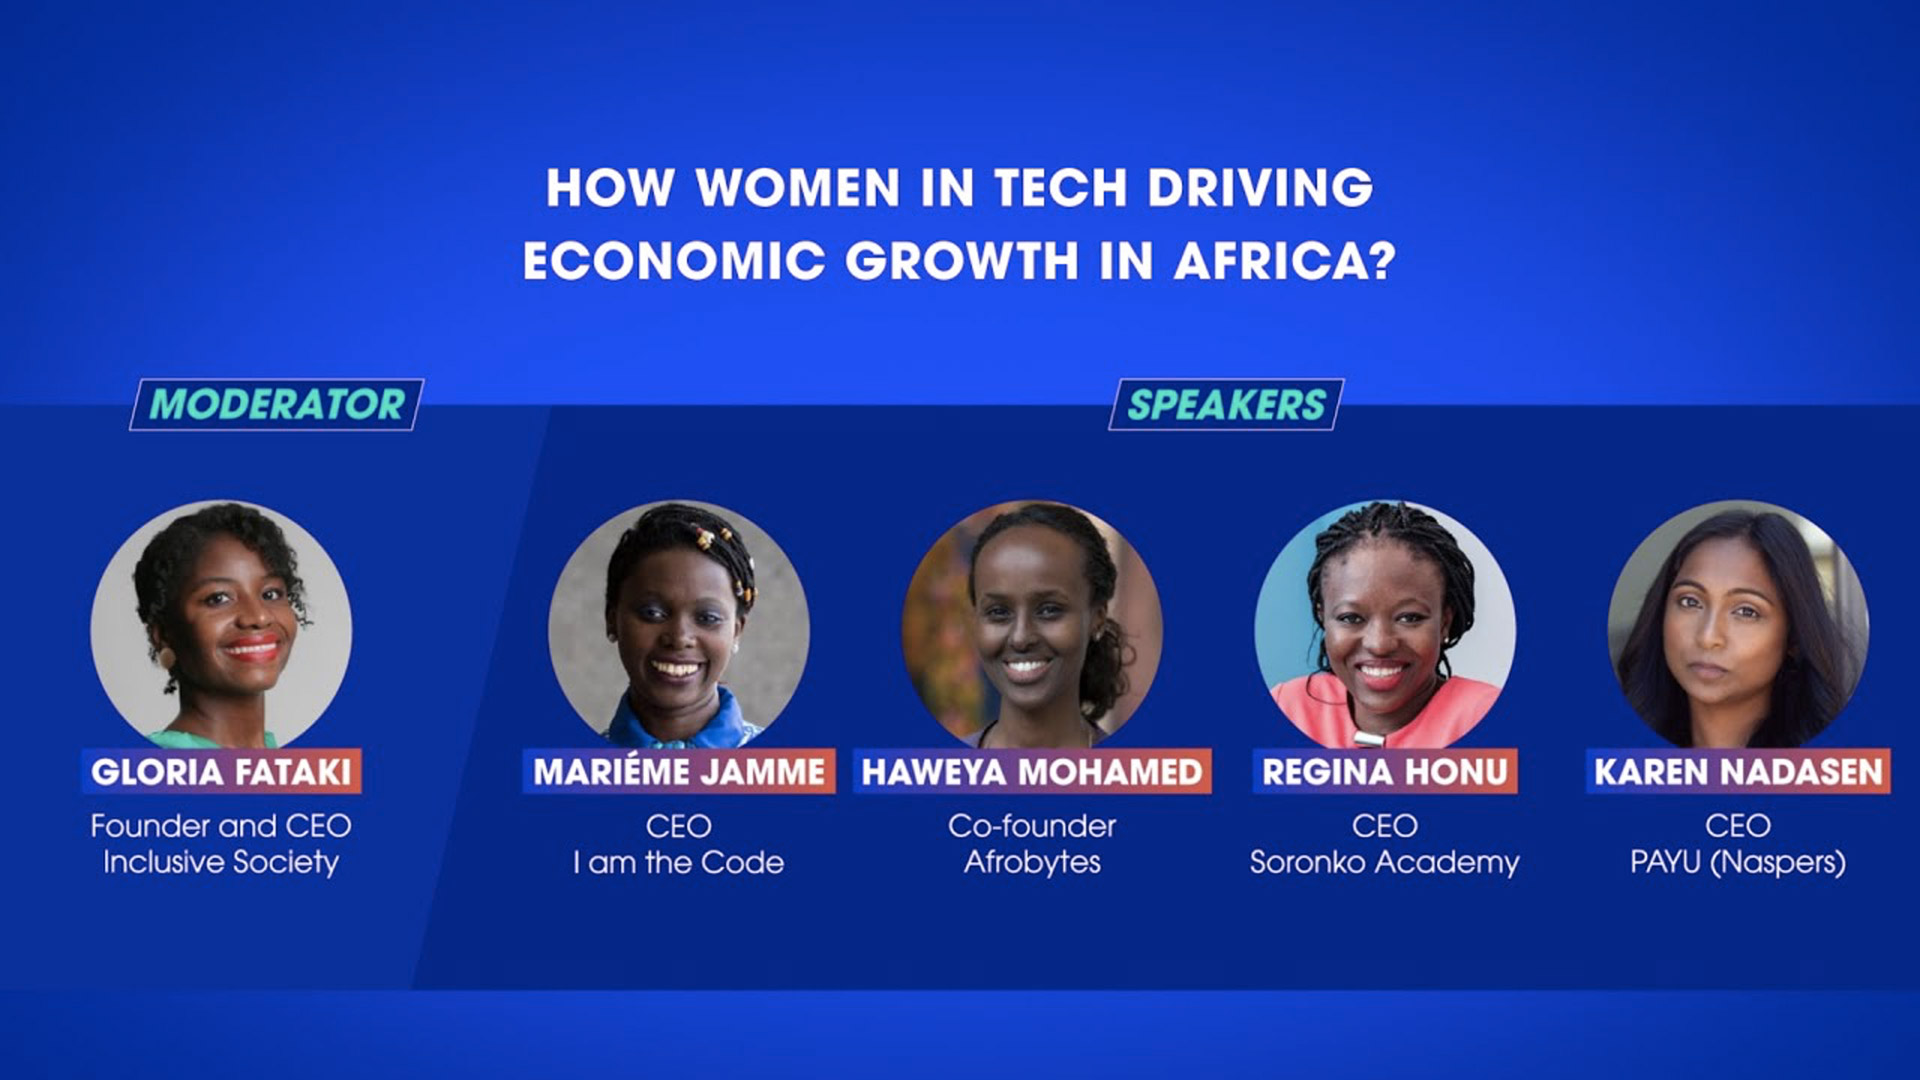 How Women in Tech Driving Economic Growth in Africa?